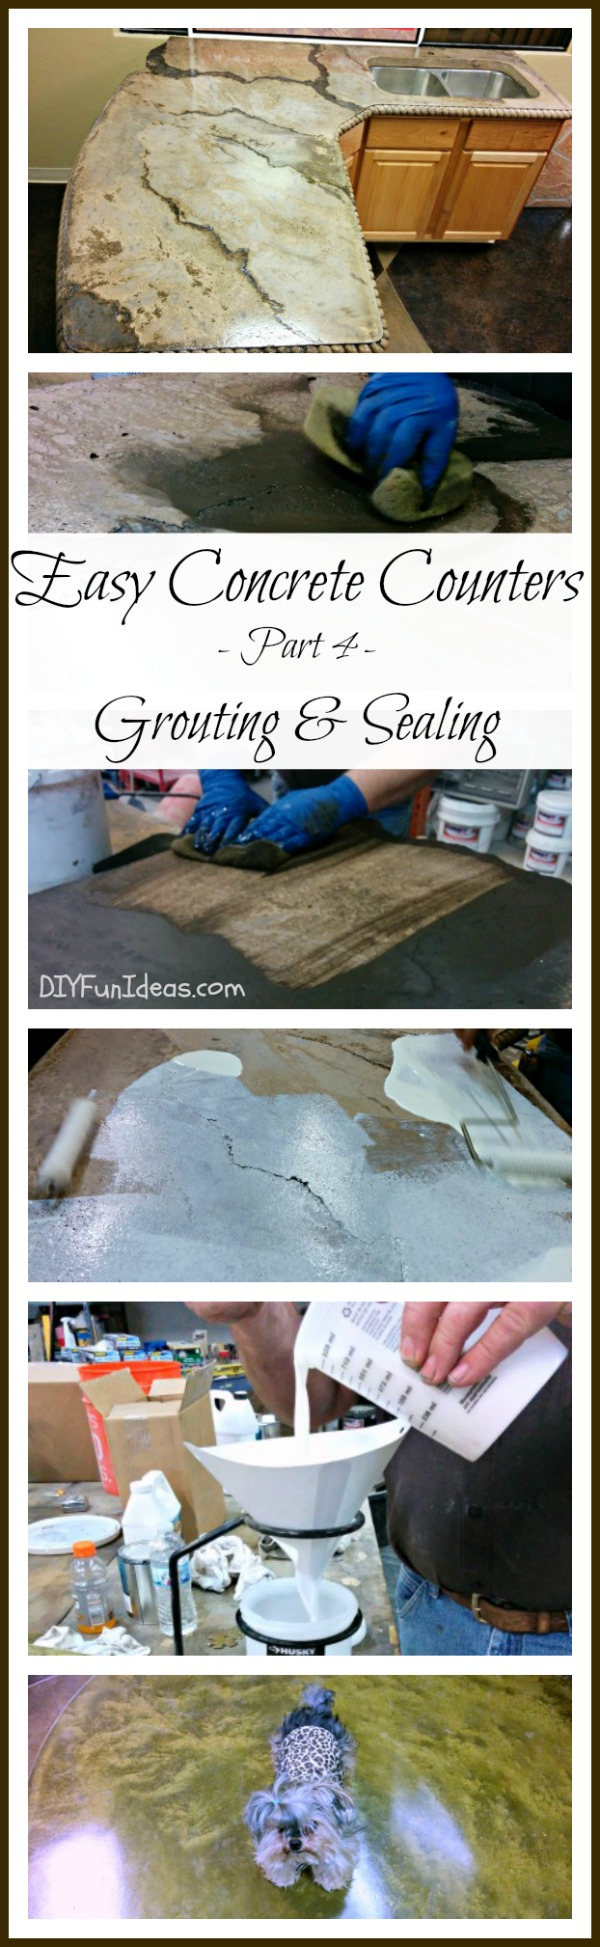 EASY DIY CONCRETE COUNTERTOP TUTORIAL - Part 4 Grouting & Sealing